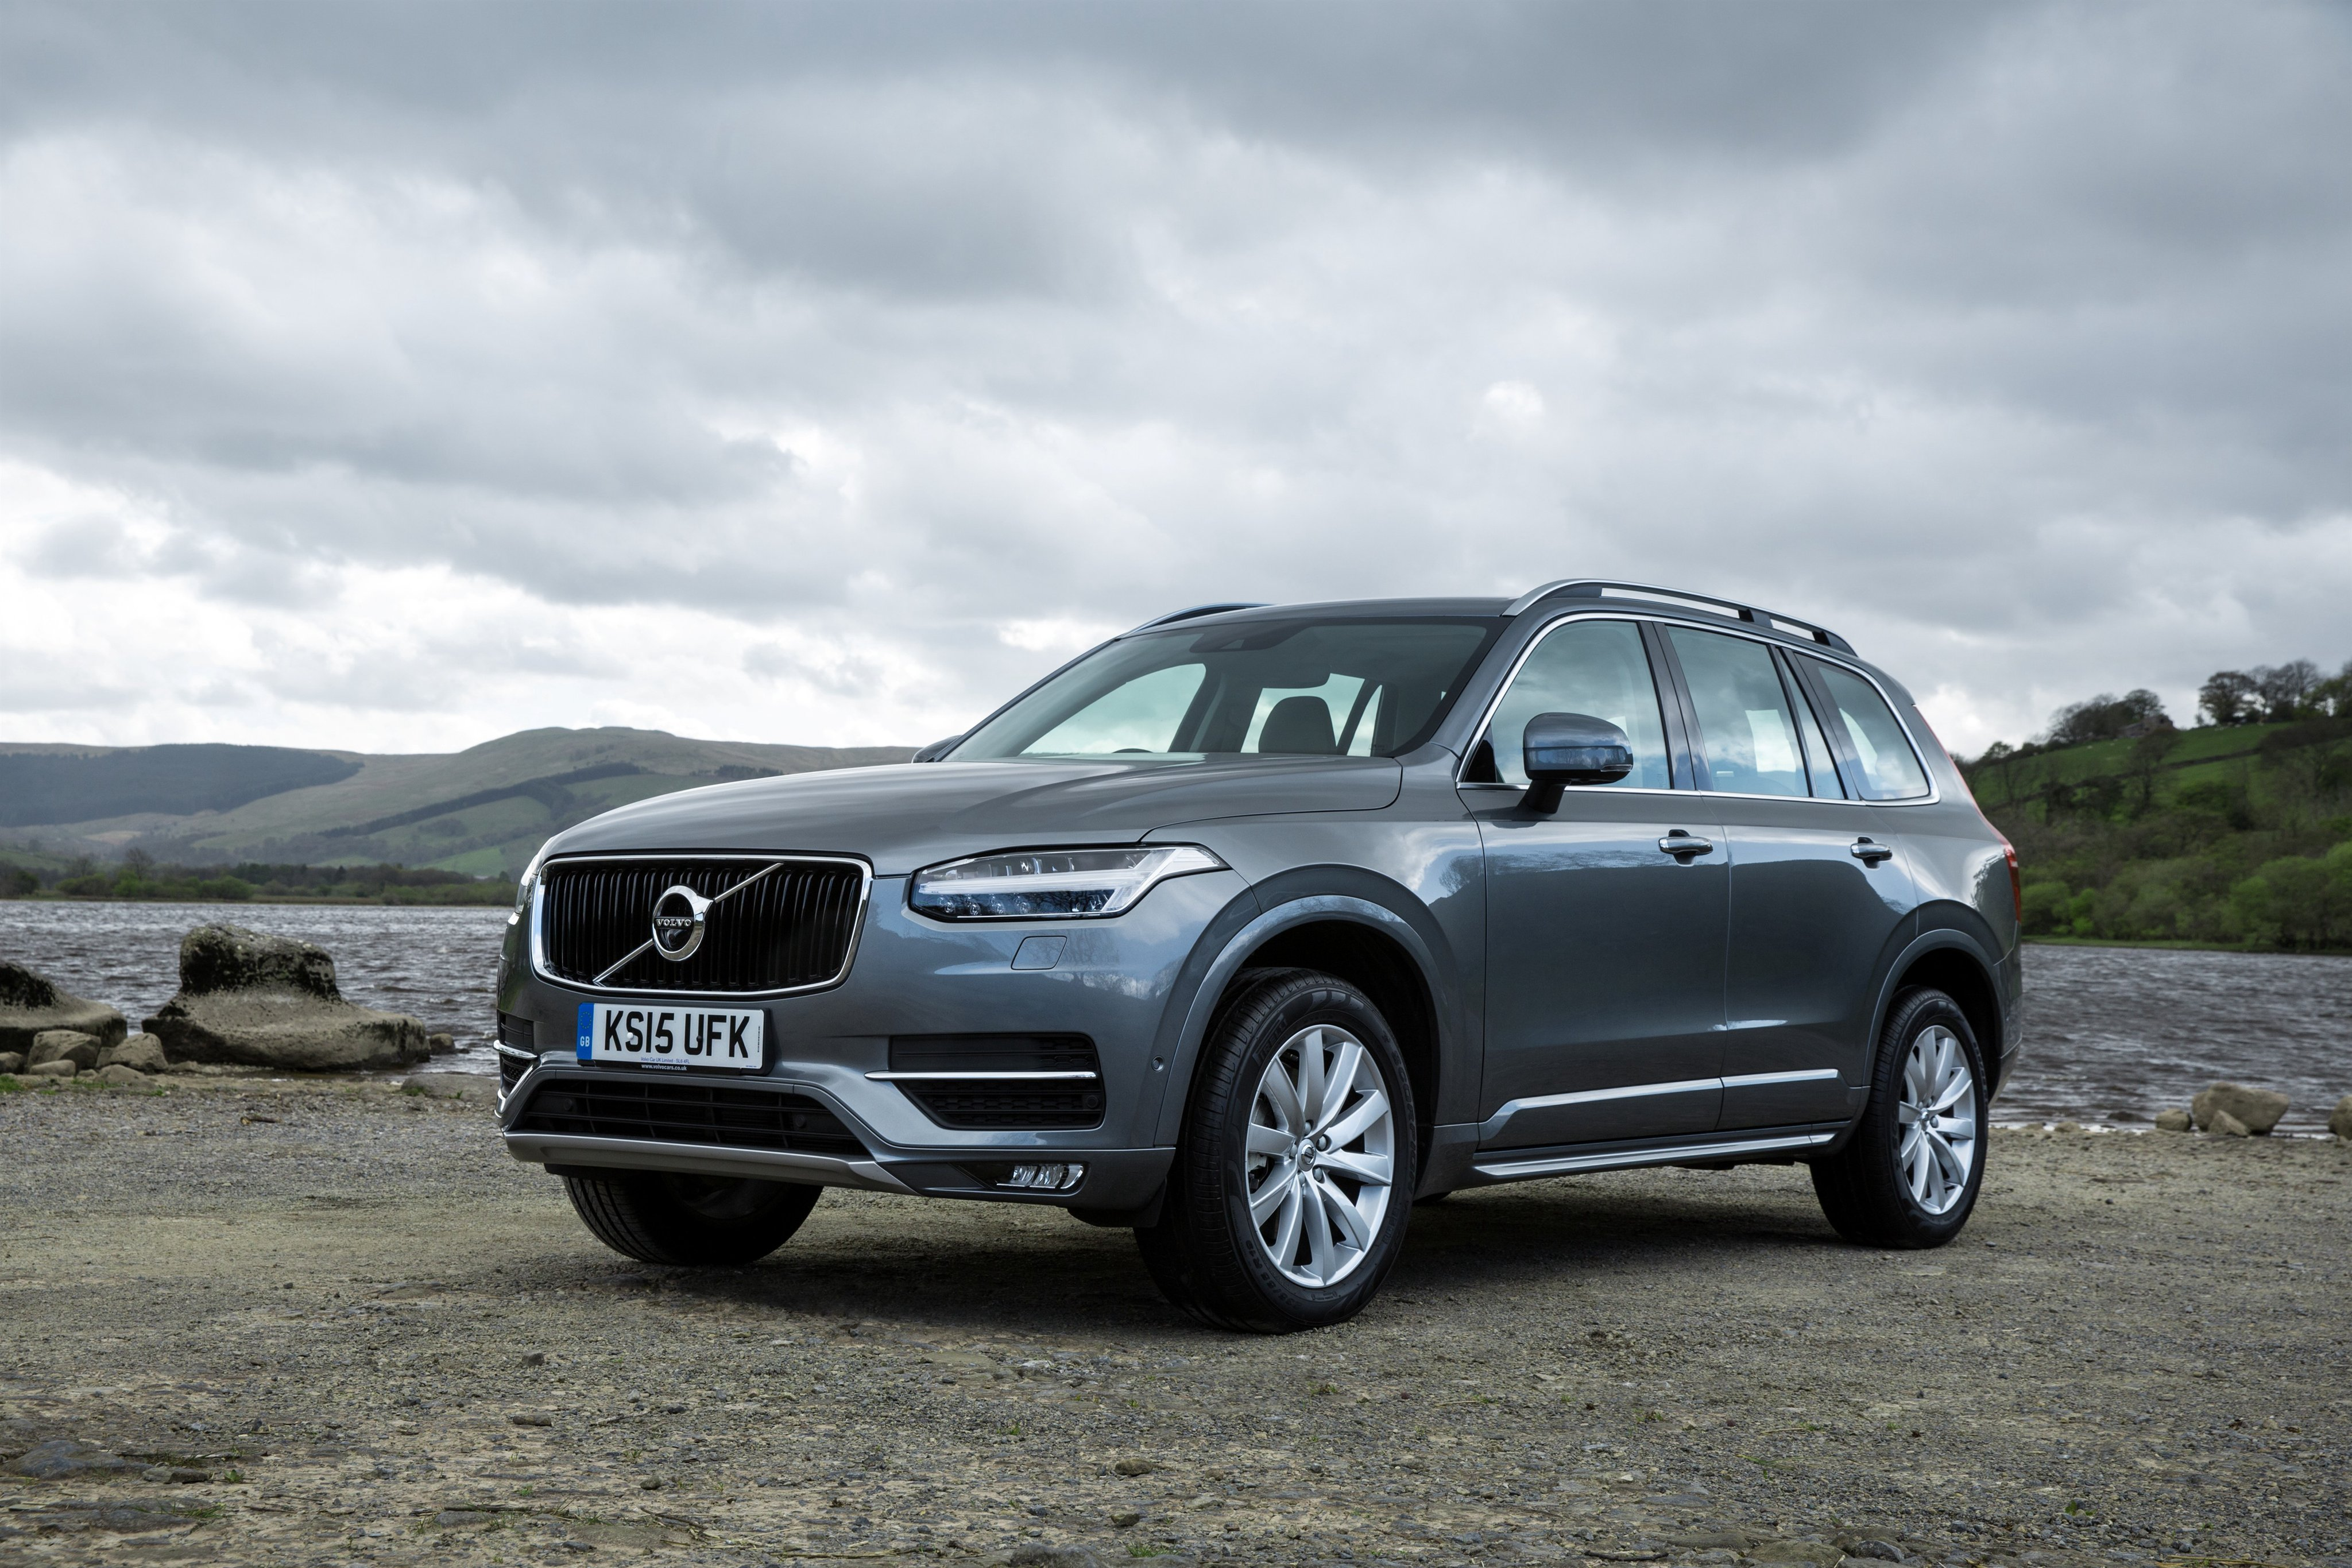 volvo xc90 d5 momentum uk spec cars suv 2015 wallpaper. Black Bedroom Furniture Sets. Home Design Ideas